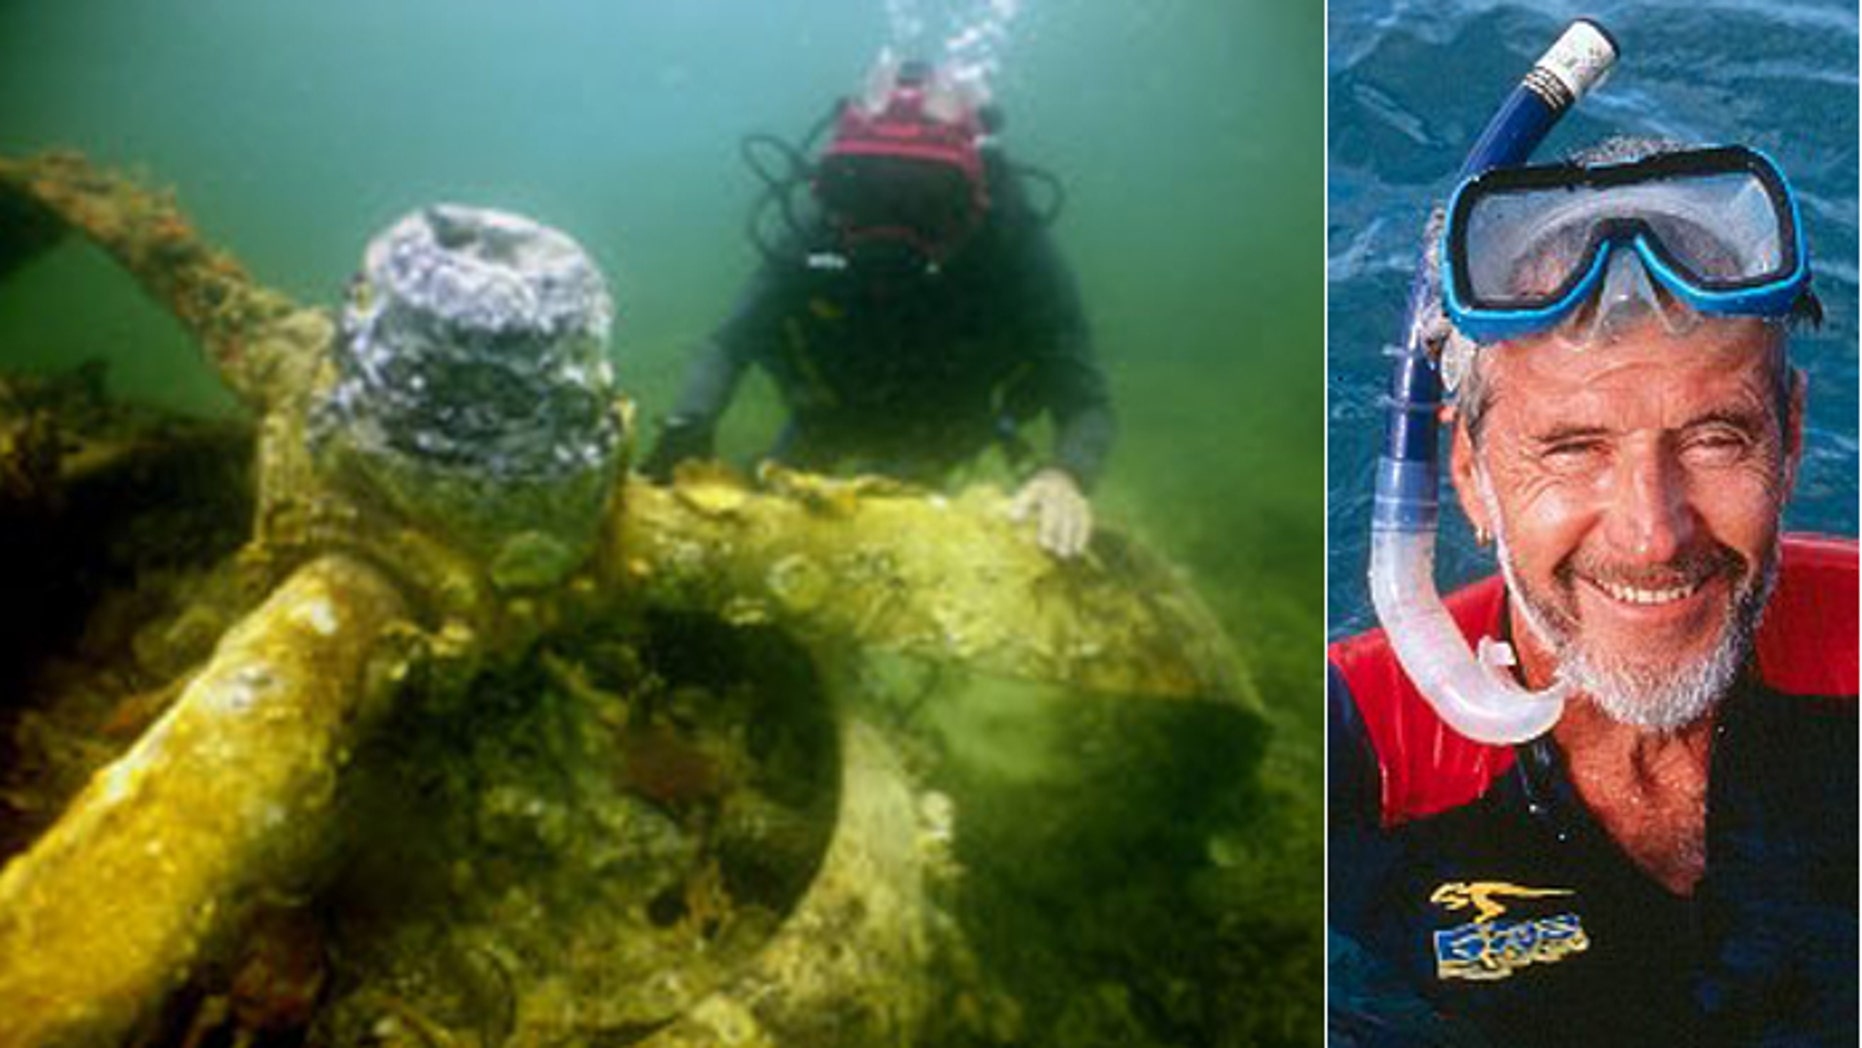 Ben Cropp, whown here diving an airplane wreck, believes he is close to finding proof that Portuguese sailors found Australia long before the Dutch, who are credited with discovering it. (Ben Cropp)